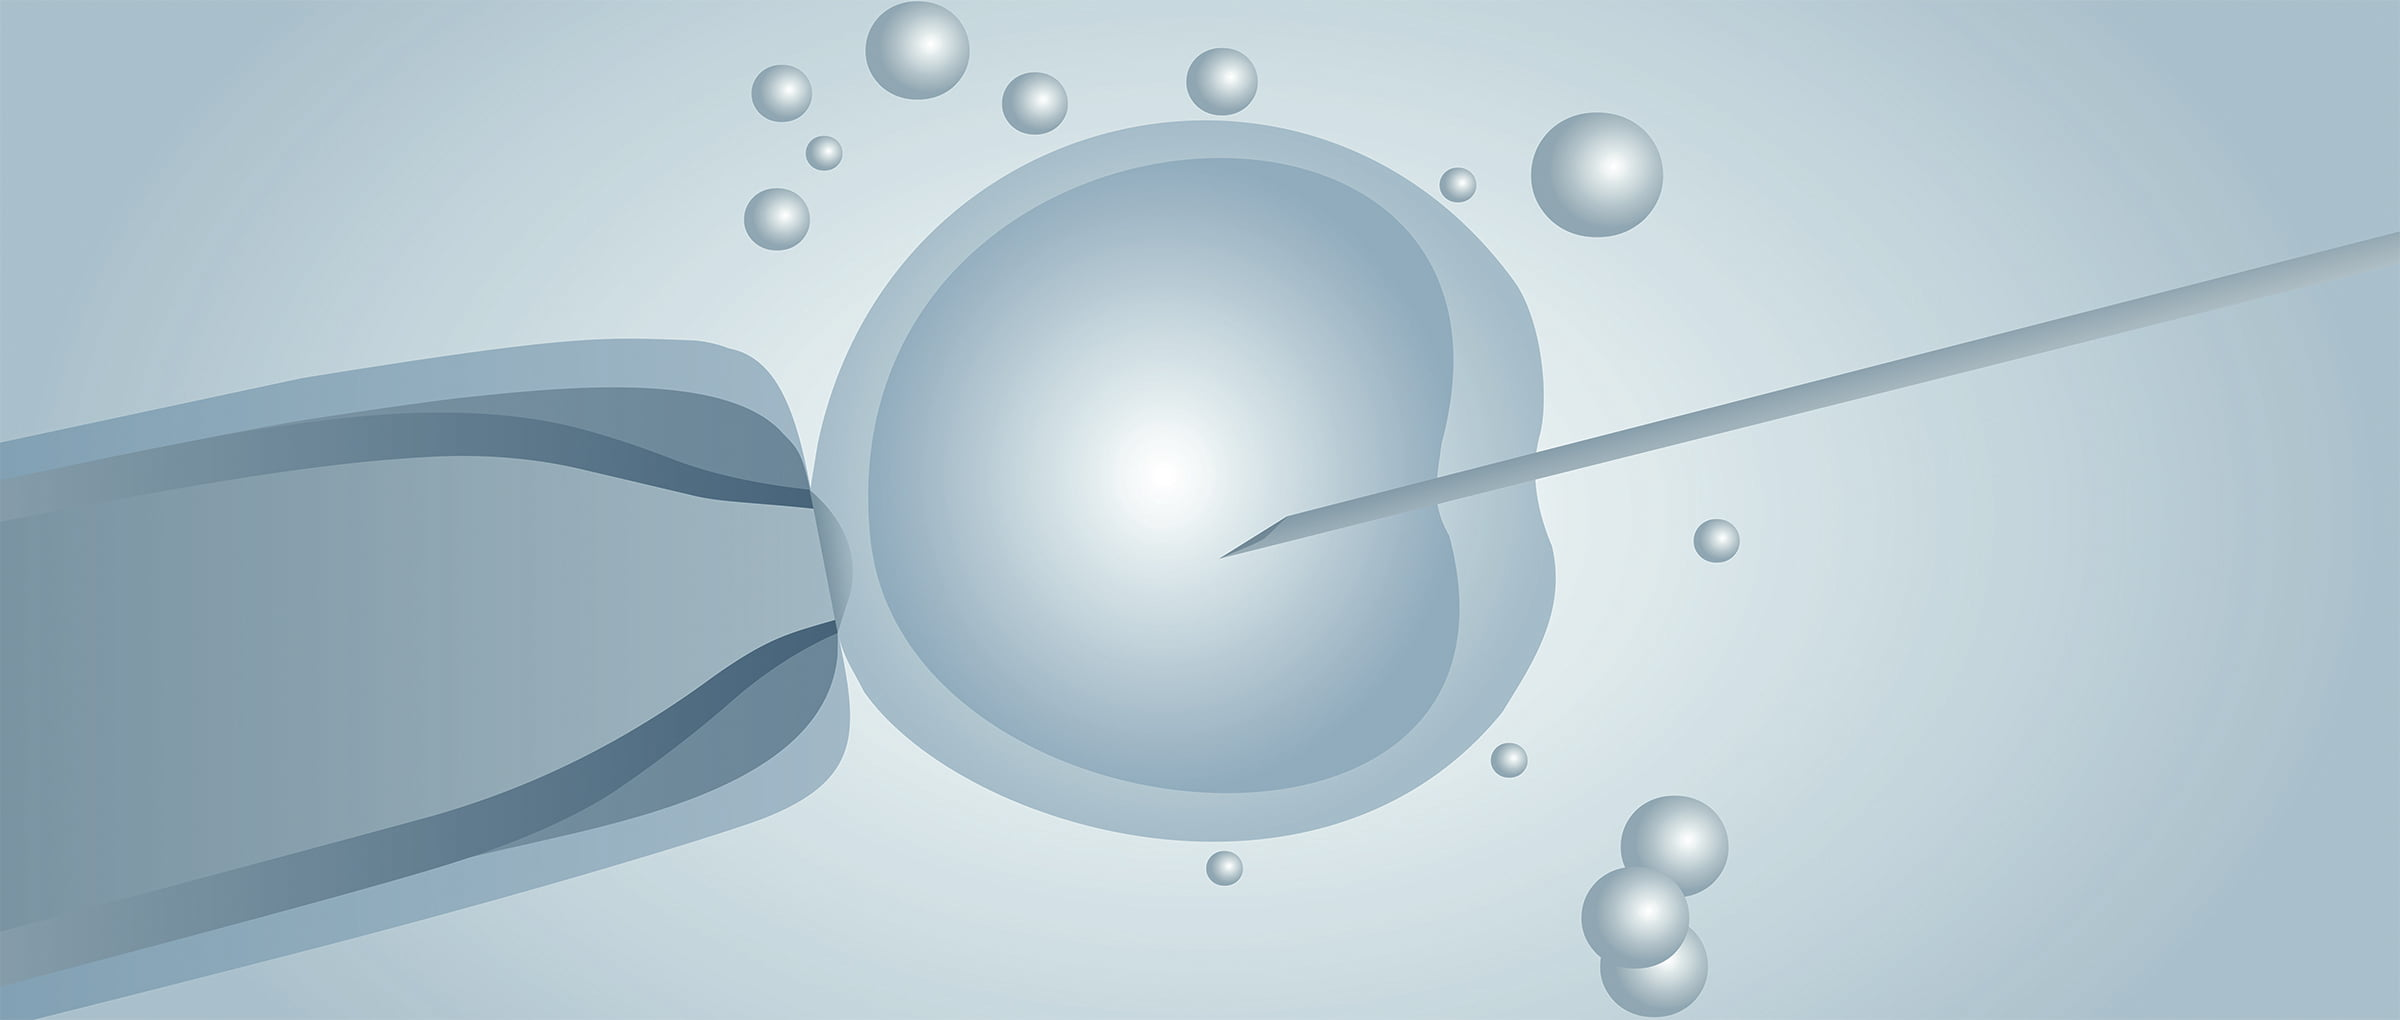 Donor-Egg IVF in the Czech Republic